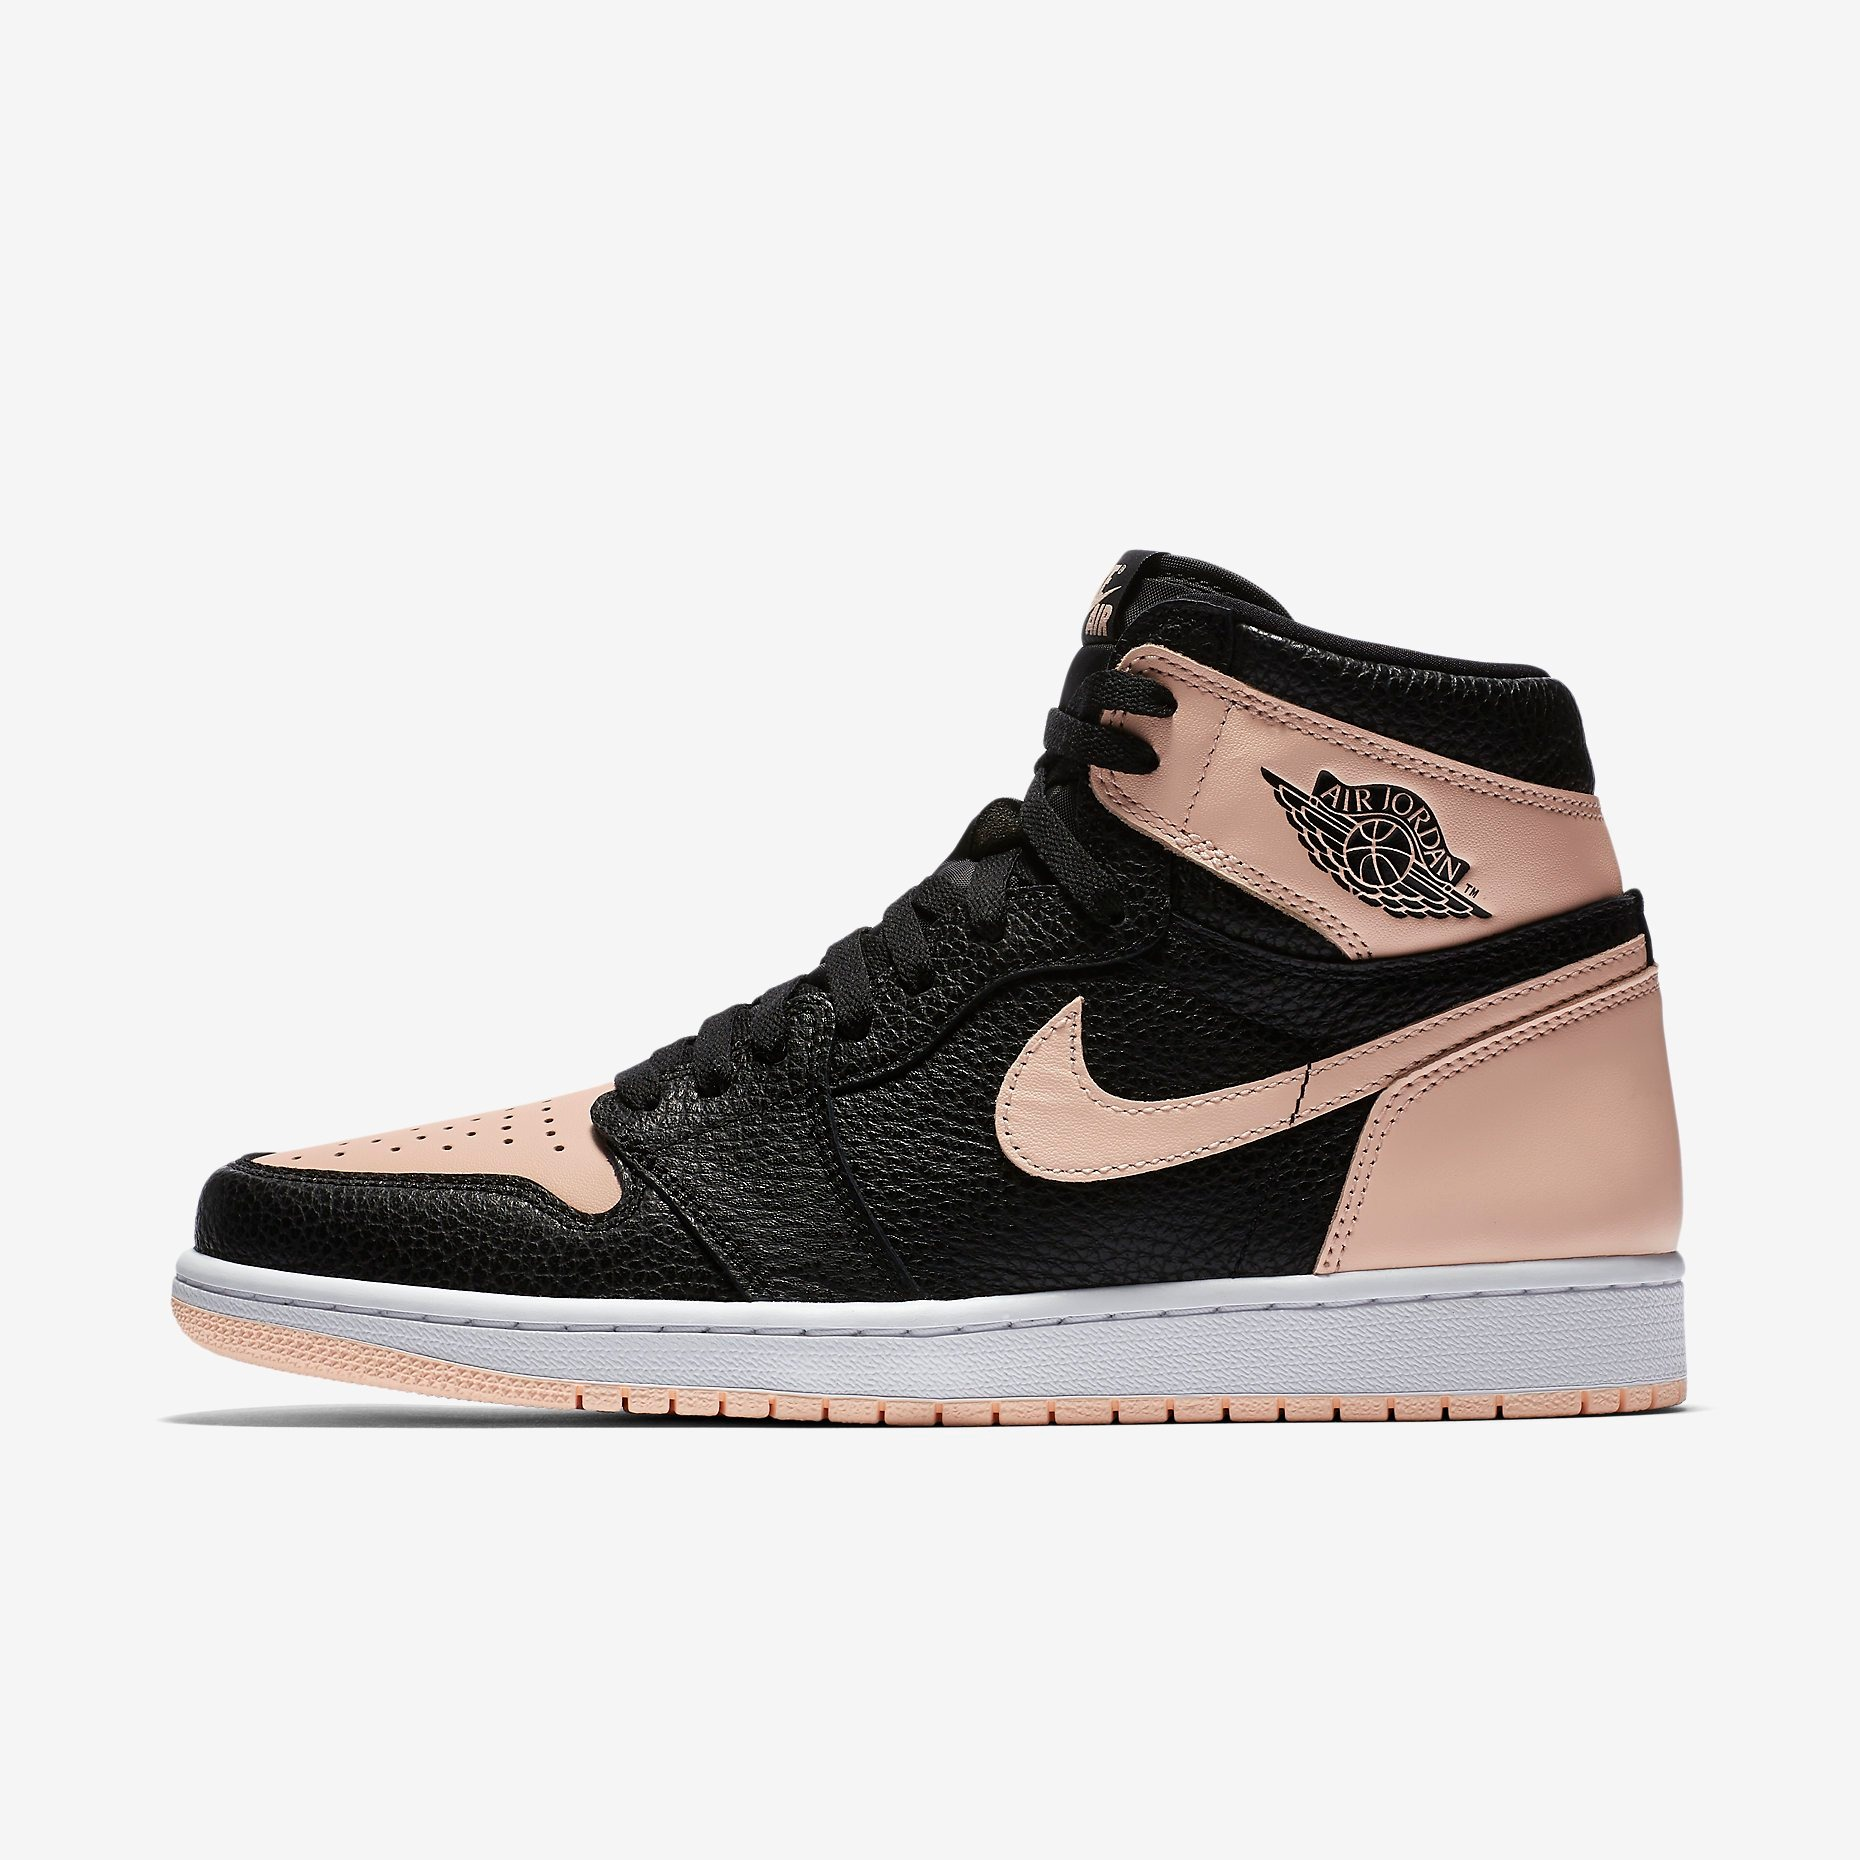 555088 081 Air Jordan 1 Retro High OG Crimson Tint 1